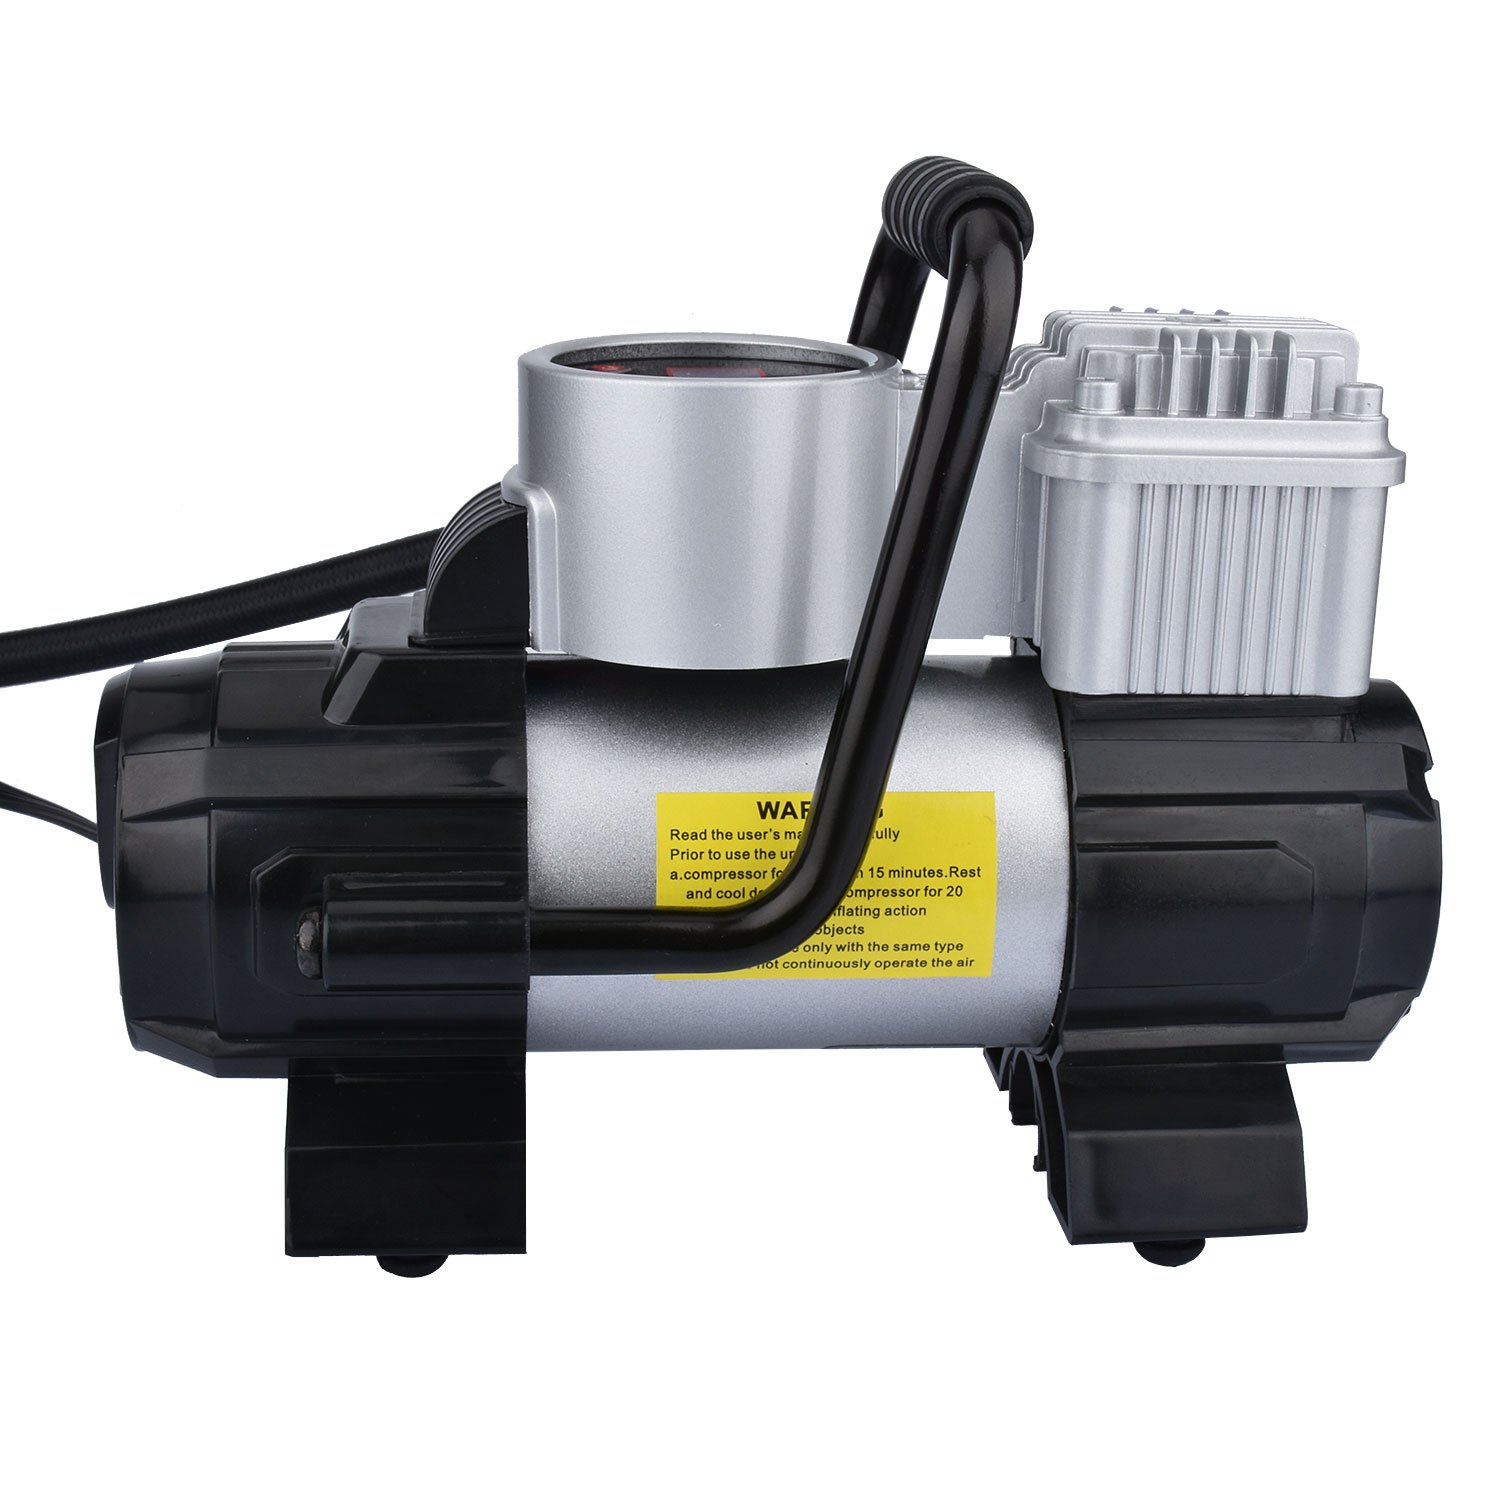 ae shop portable air compressor pump 100 psi 12v 150w auto off digital car tire 606794725862 ebay. Black Bedroom Furniture Sets. Home Design Ideas